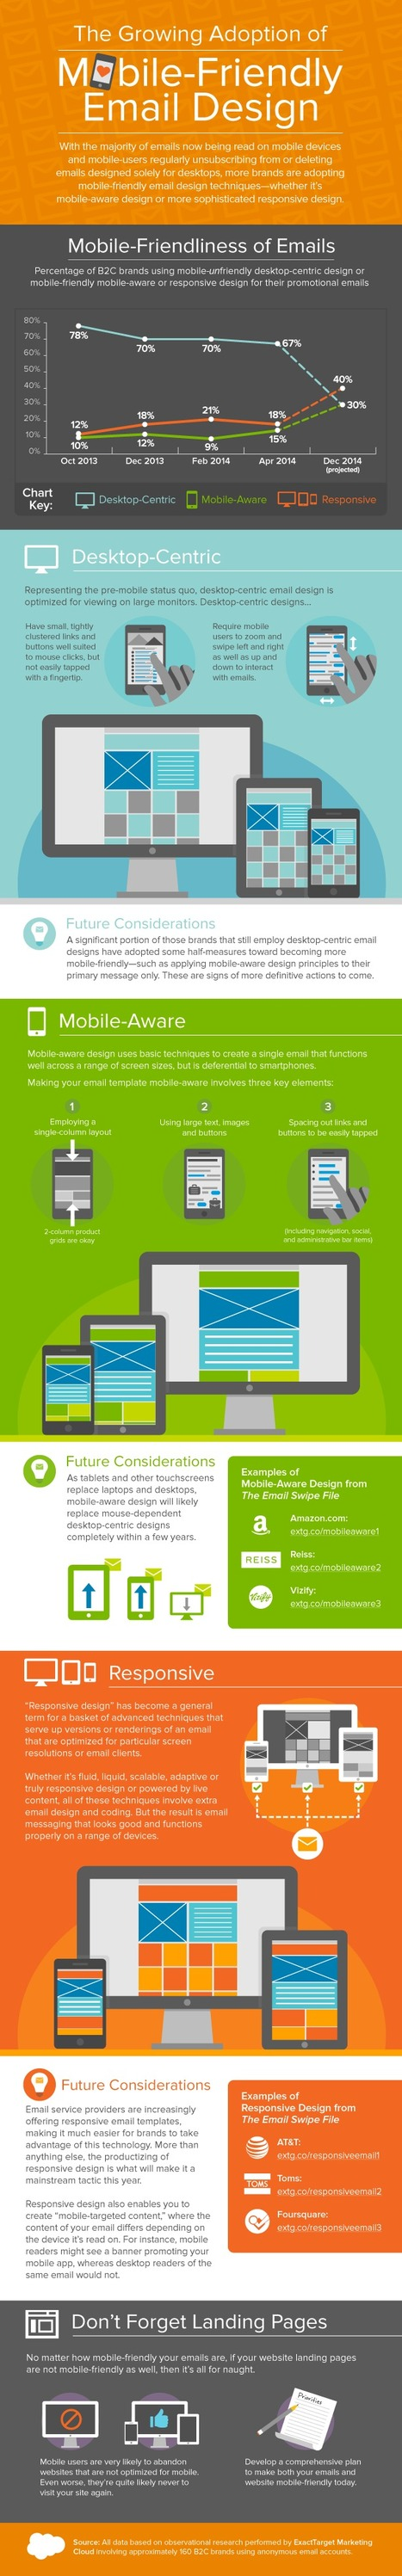 Infographic: The Growing Adoption of Mobile-Friendly Email Design - Email Marketing Rules | language and technology | Scoop.it